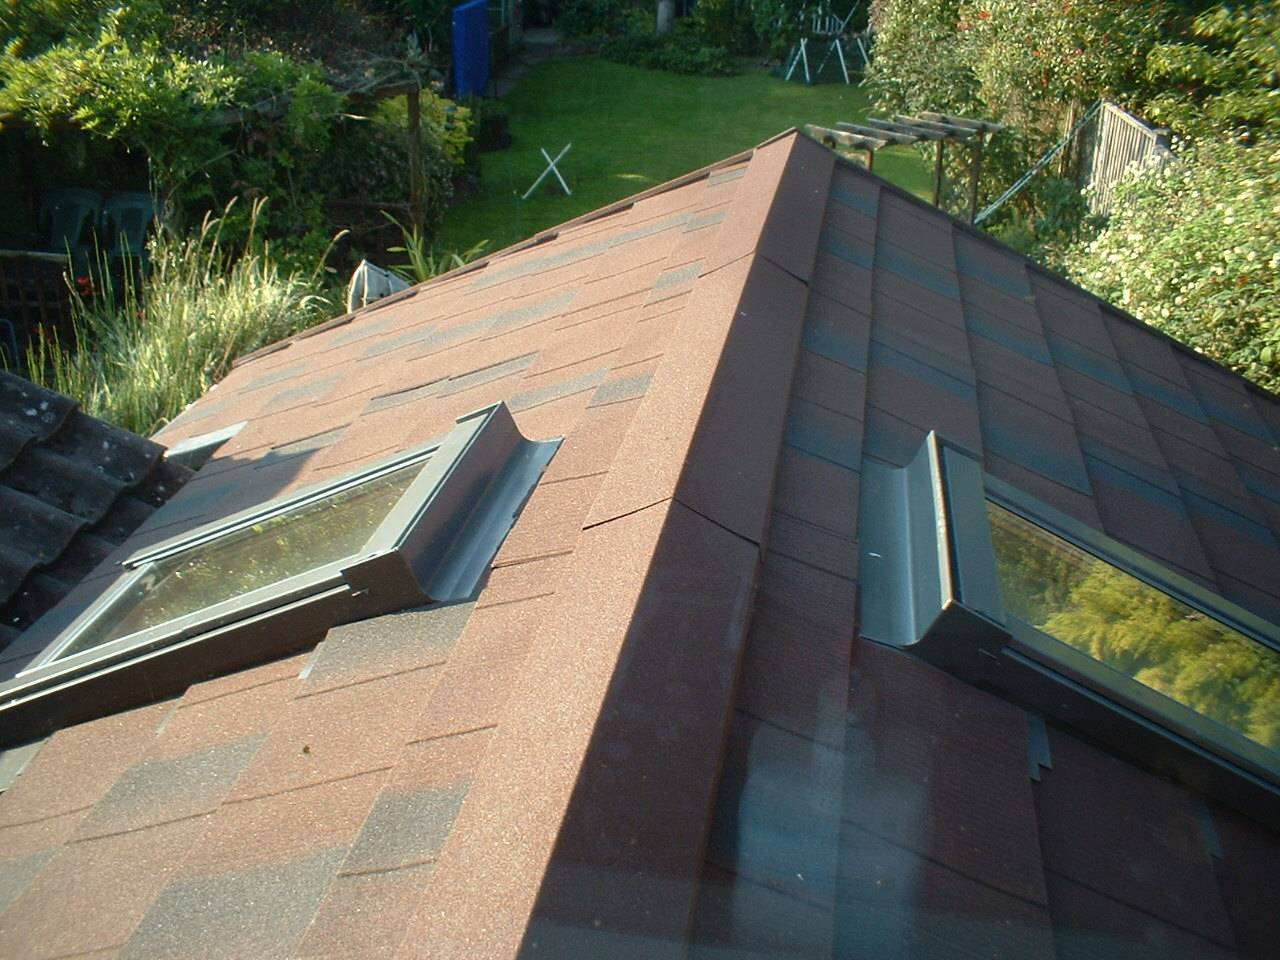 roof window in tiled roof